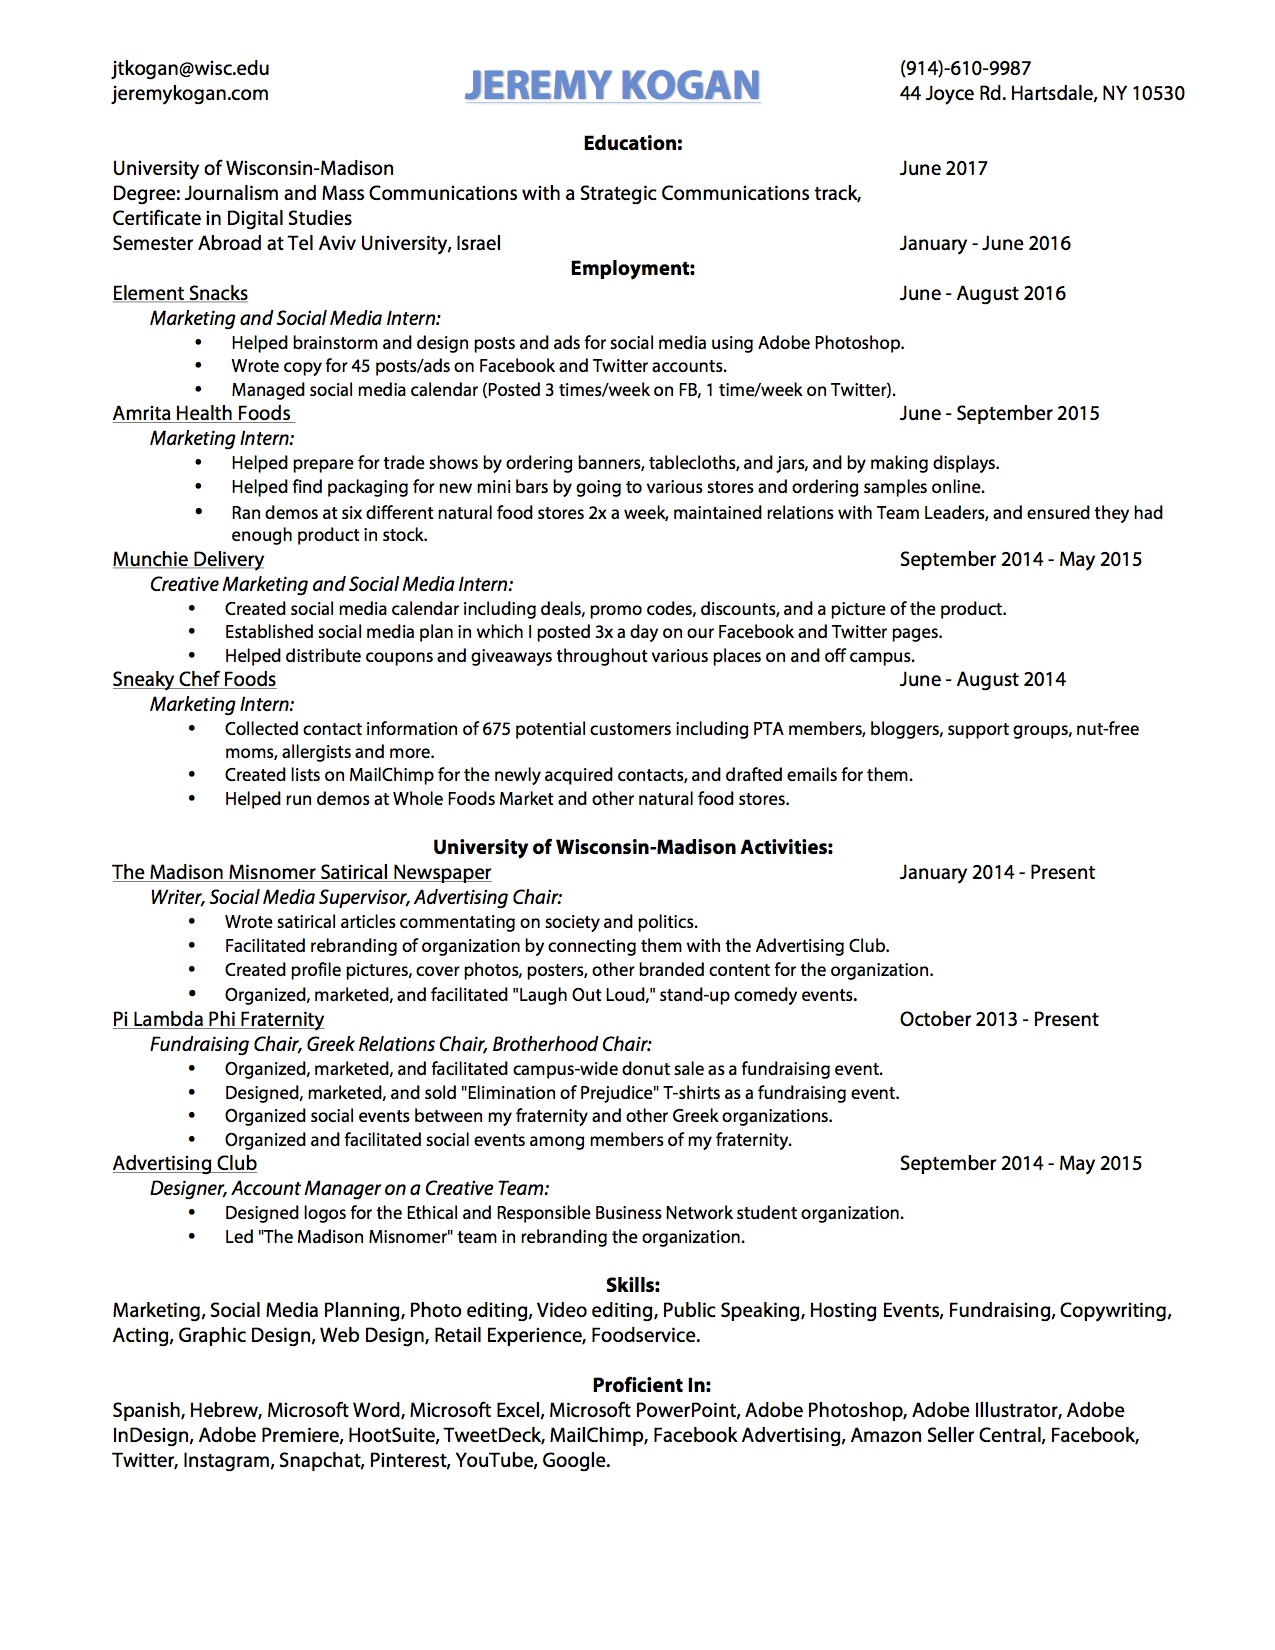 Resume Welcome To My Website